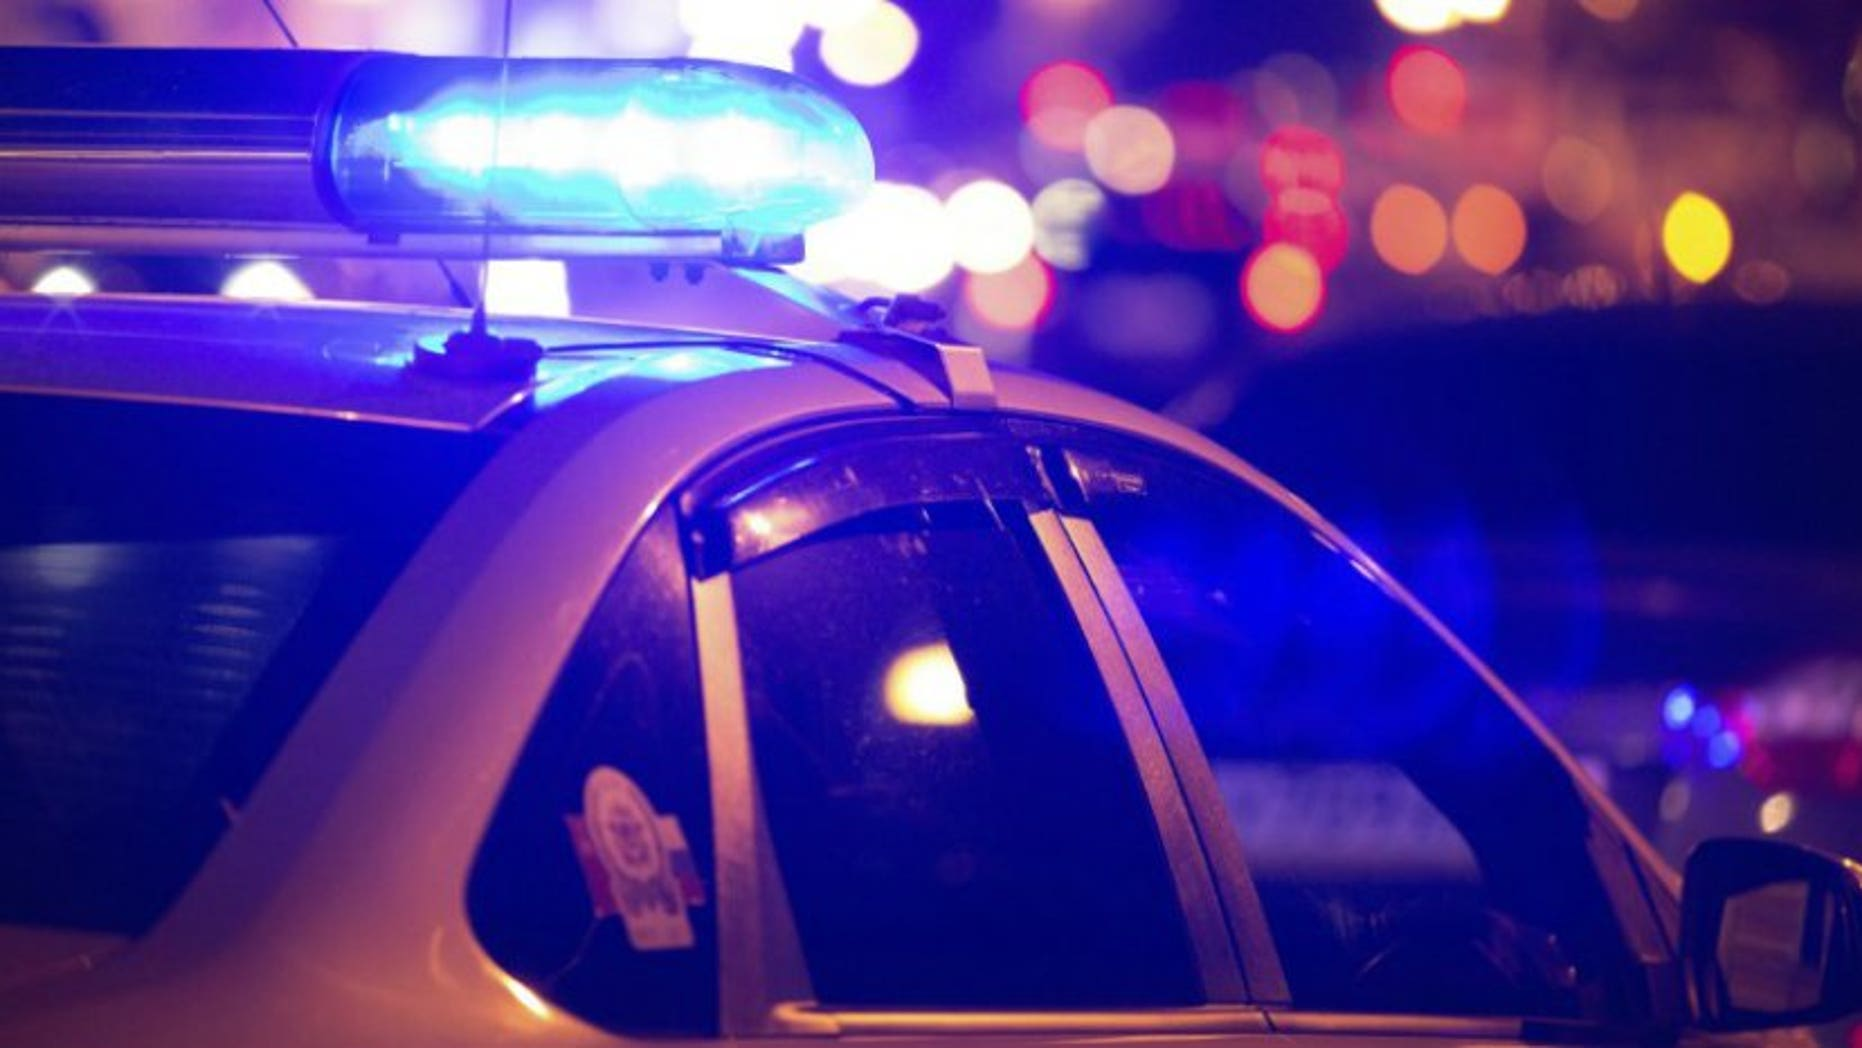 A man in Forest Hill told police he was shot at while driving home from a holiday party.